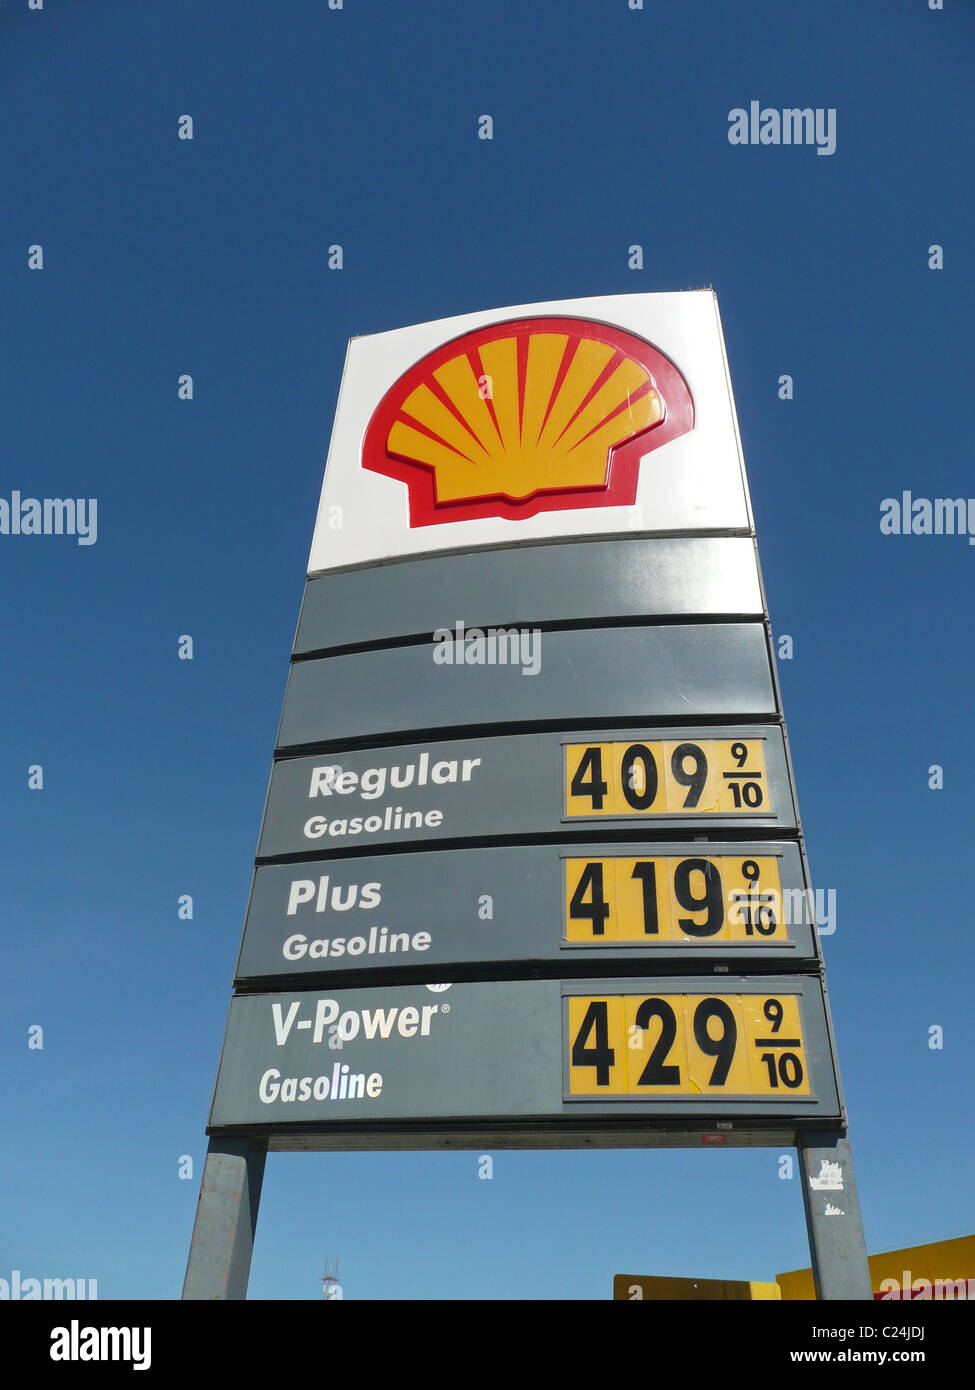 shell gas sign photos shell gas sign images alamy. Black Bedroom Furniture Sets. Home Design Ideas